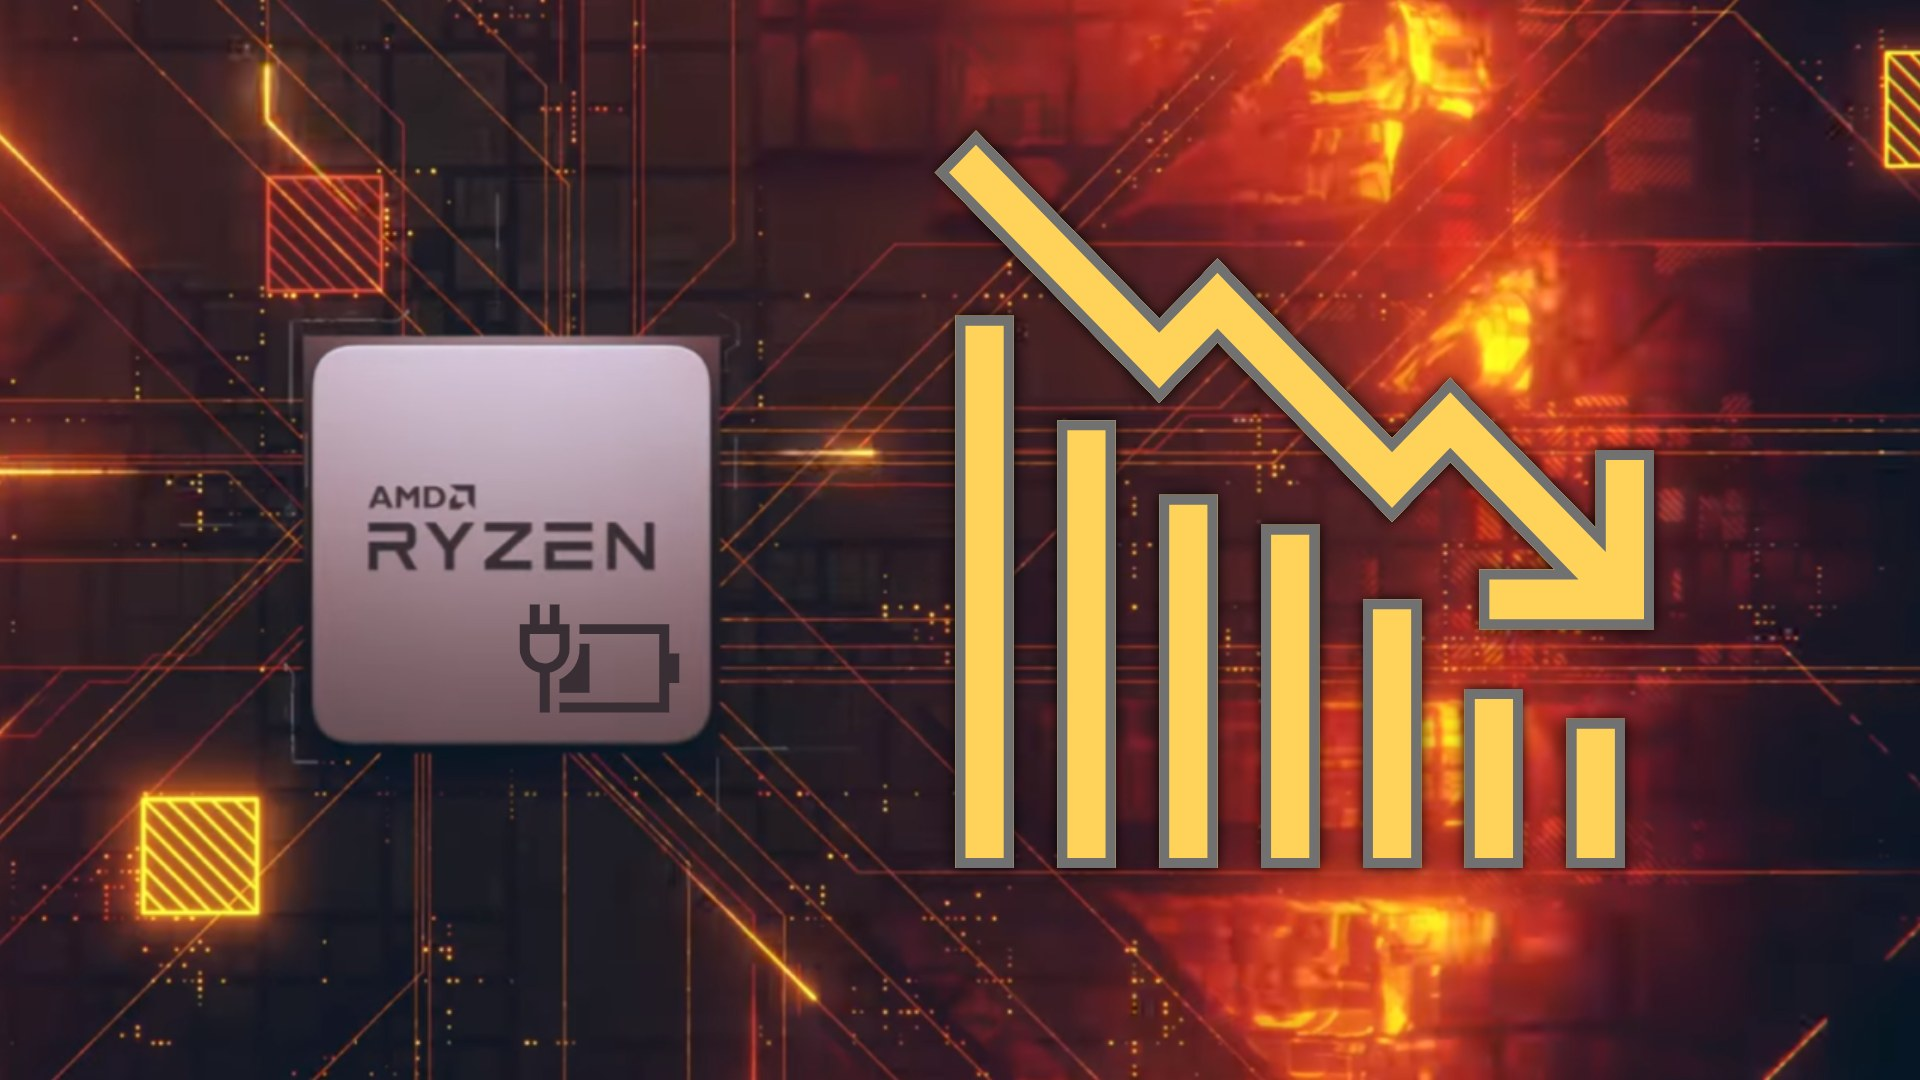 AMD Ryzen Chromebook on-battery performance issues aren't going away anytime soon